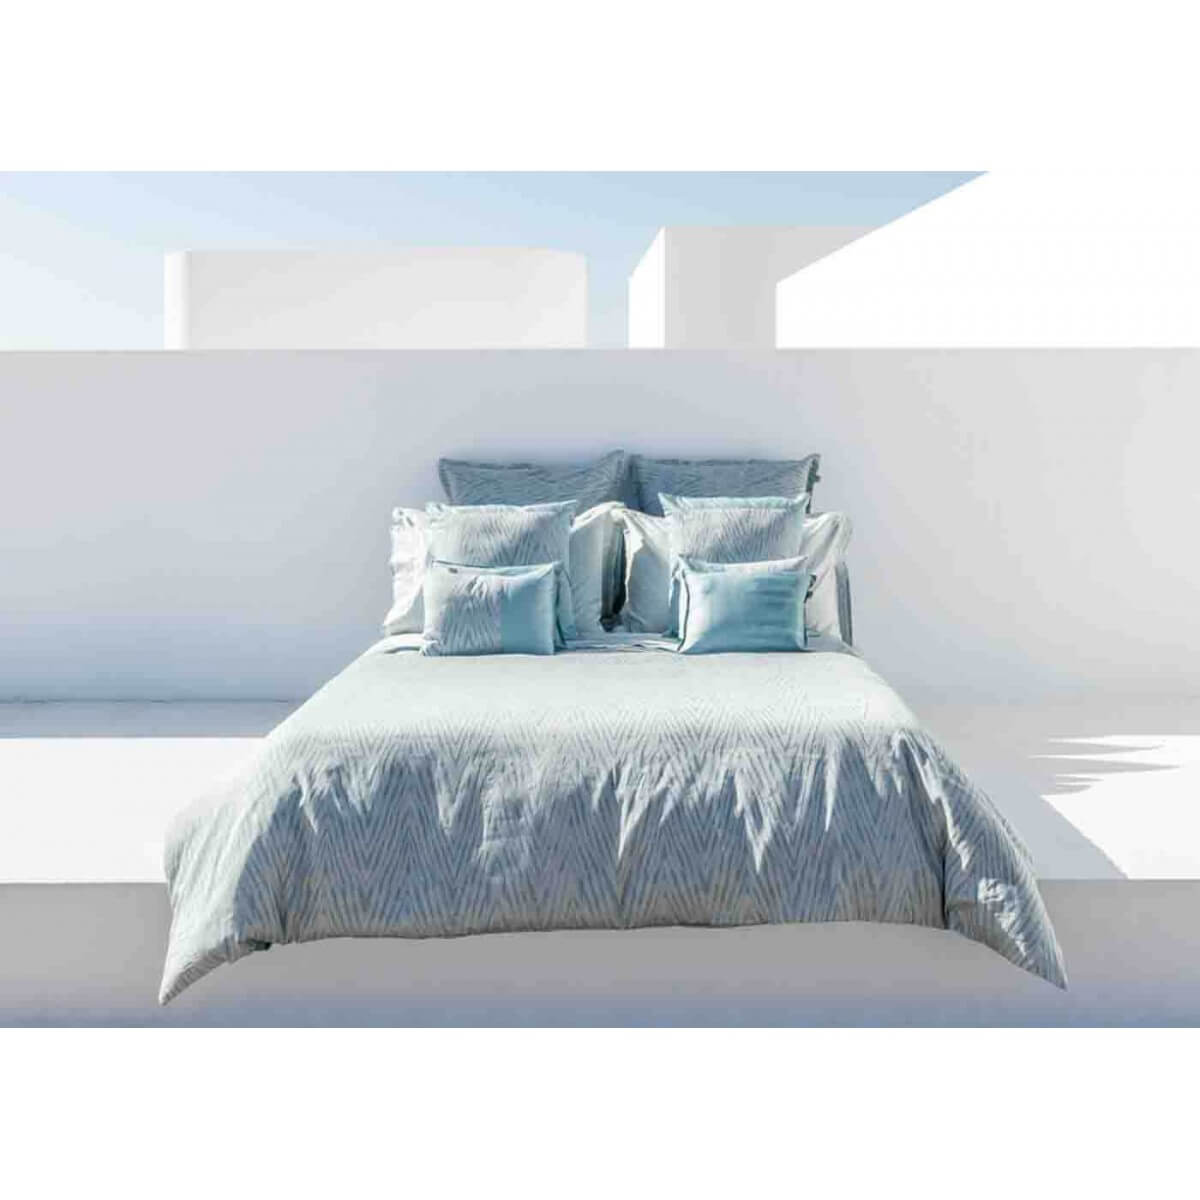 housse de couette design graphique bleu gris blue mood home concept. Black Bedroom Furniture Sets. Home Design Ideas